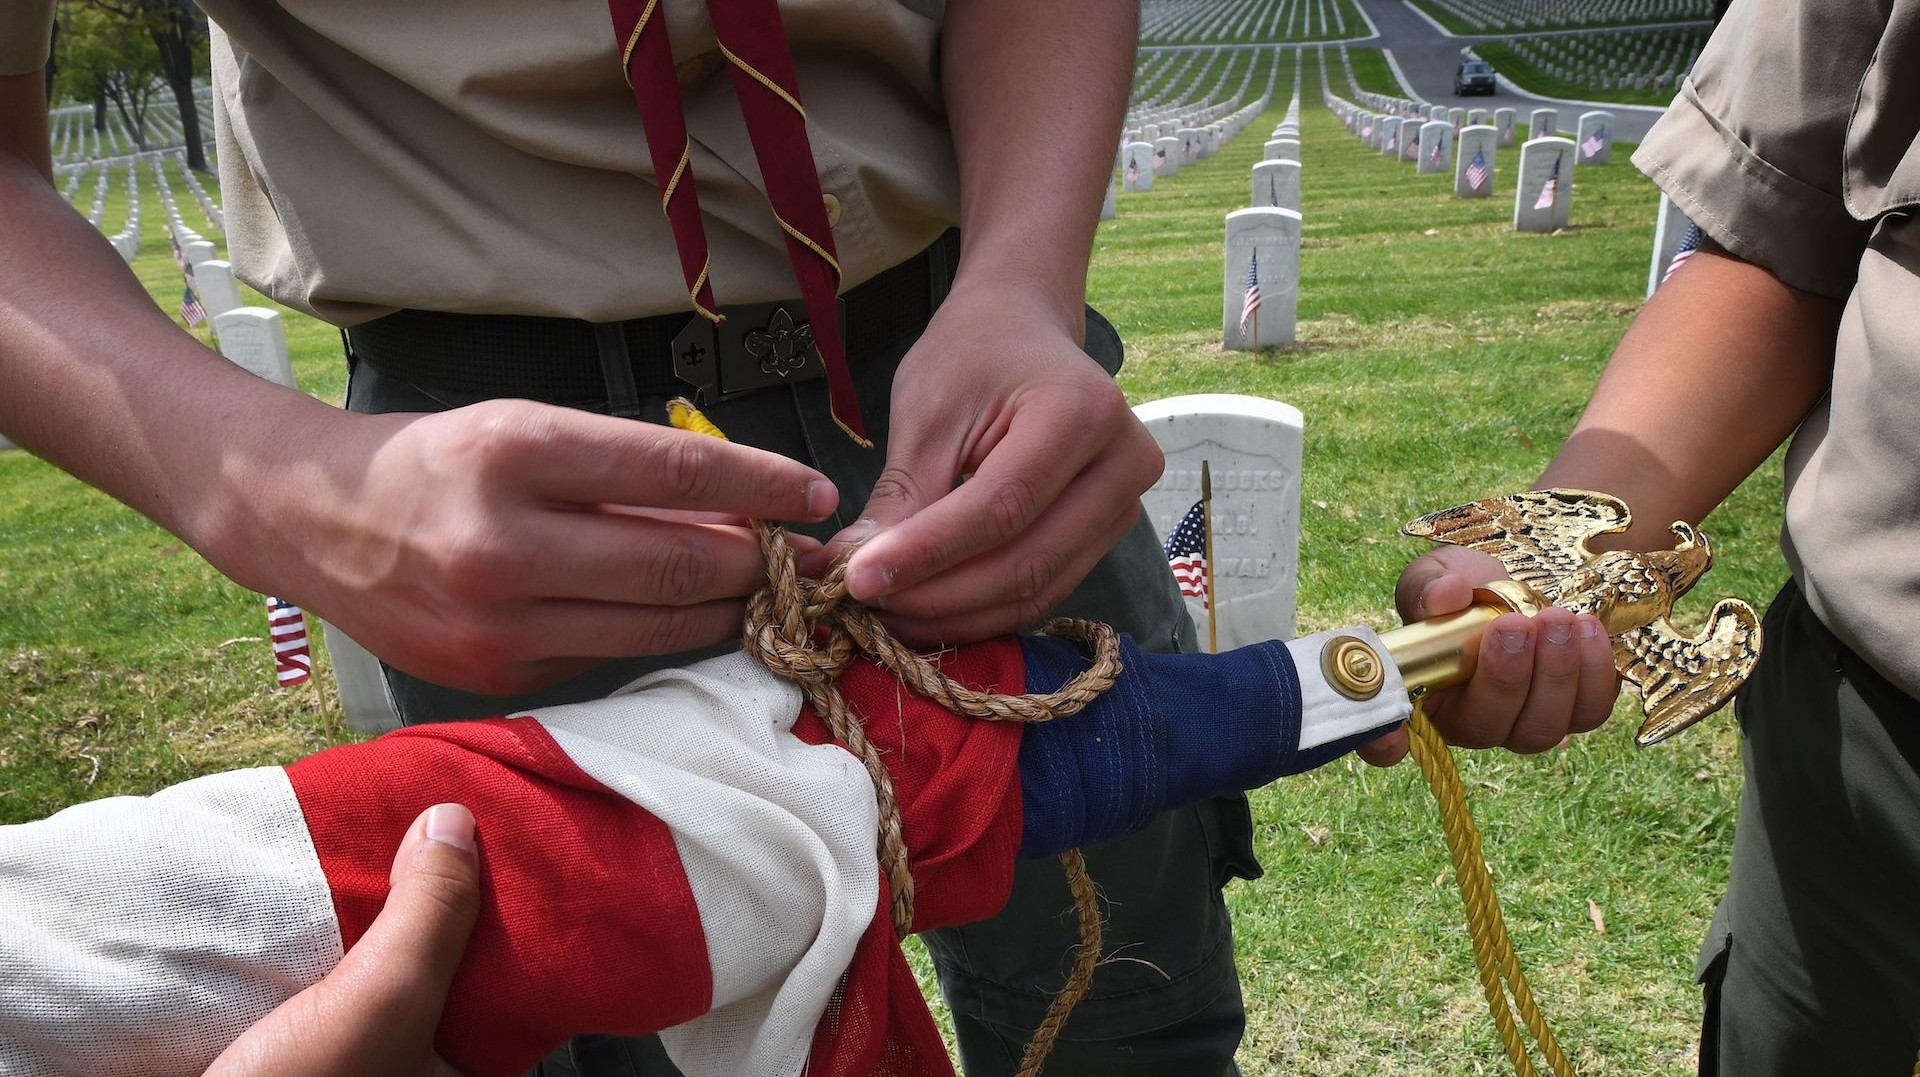 , The Boy Scouts Just Filed for Bankruptcy in the Face of Thousands of Sex Abuse Claims, Saubio Making Wealth